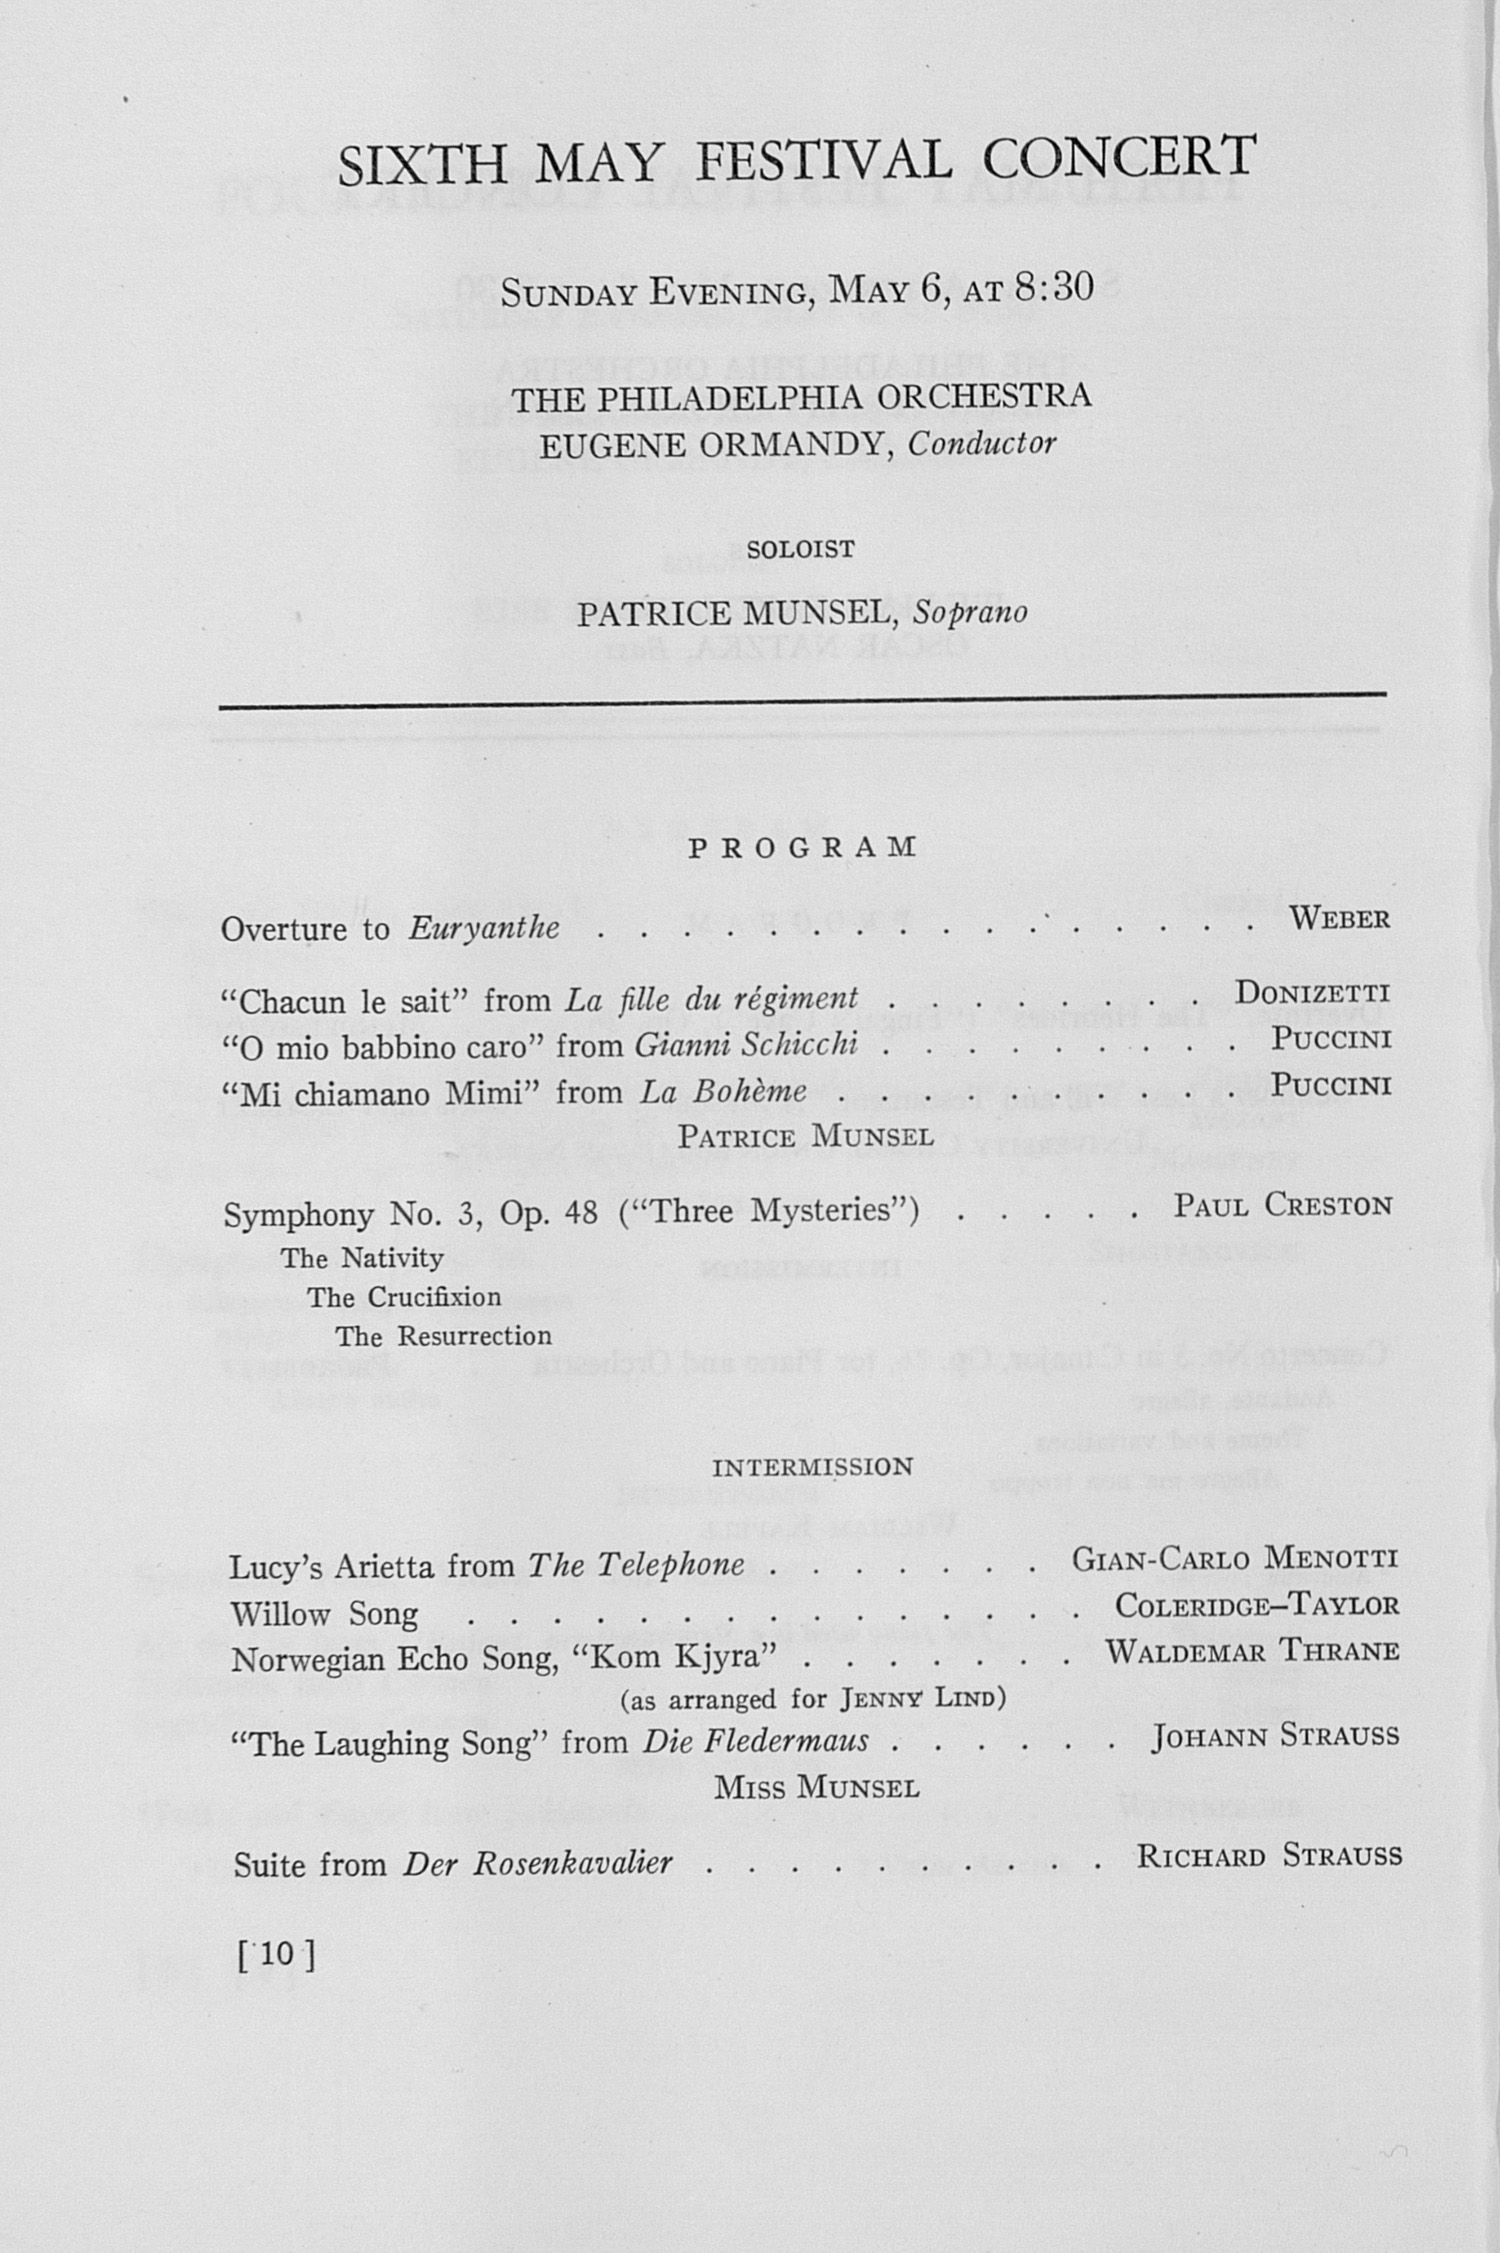 UMS Concert Program, May 3, 4, 5, 6, 1951: The Fifty-eighth Annual May Festival -- Glenn D. Mcgeoch image